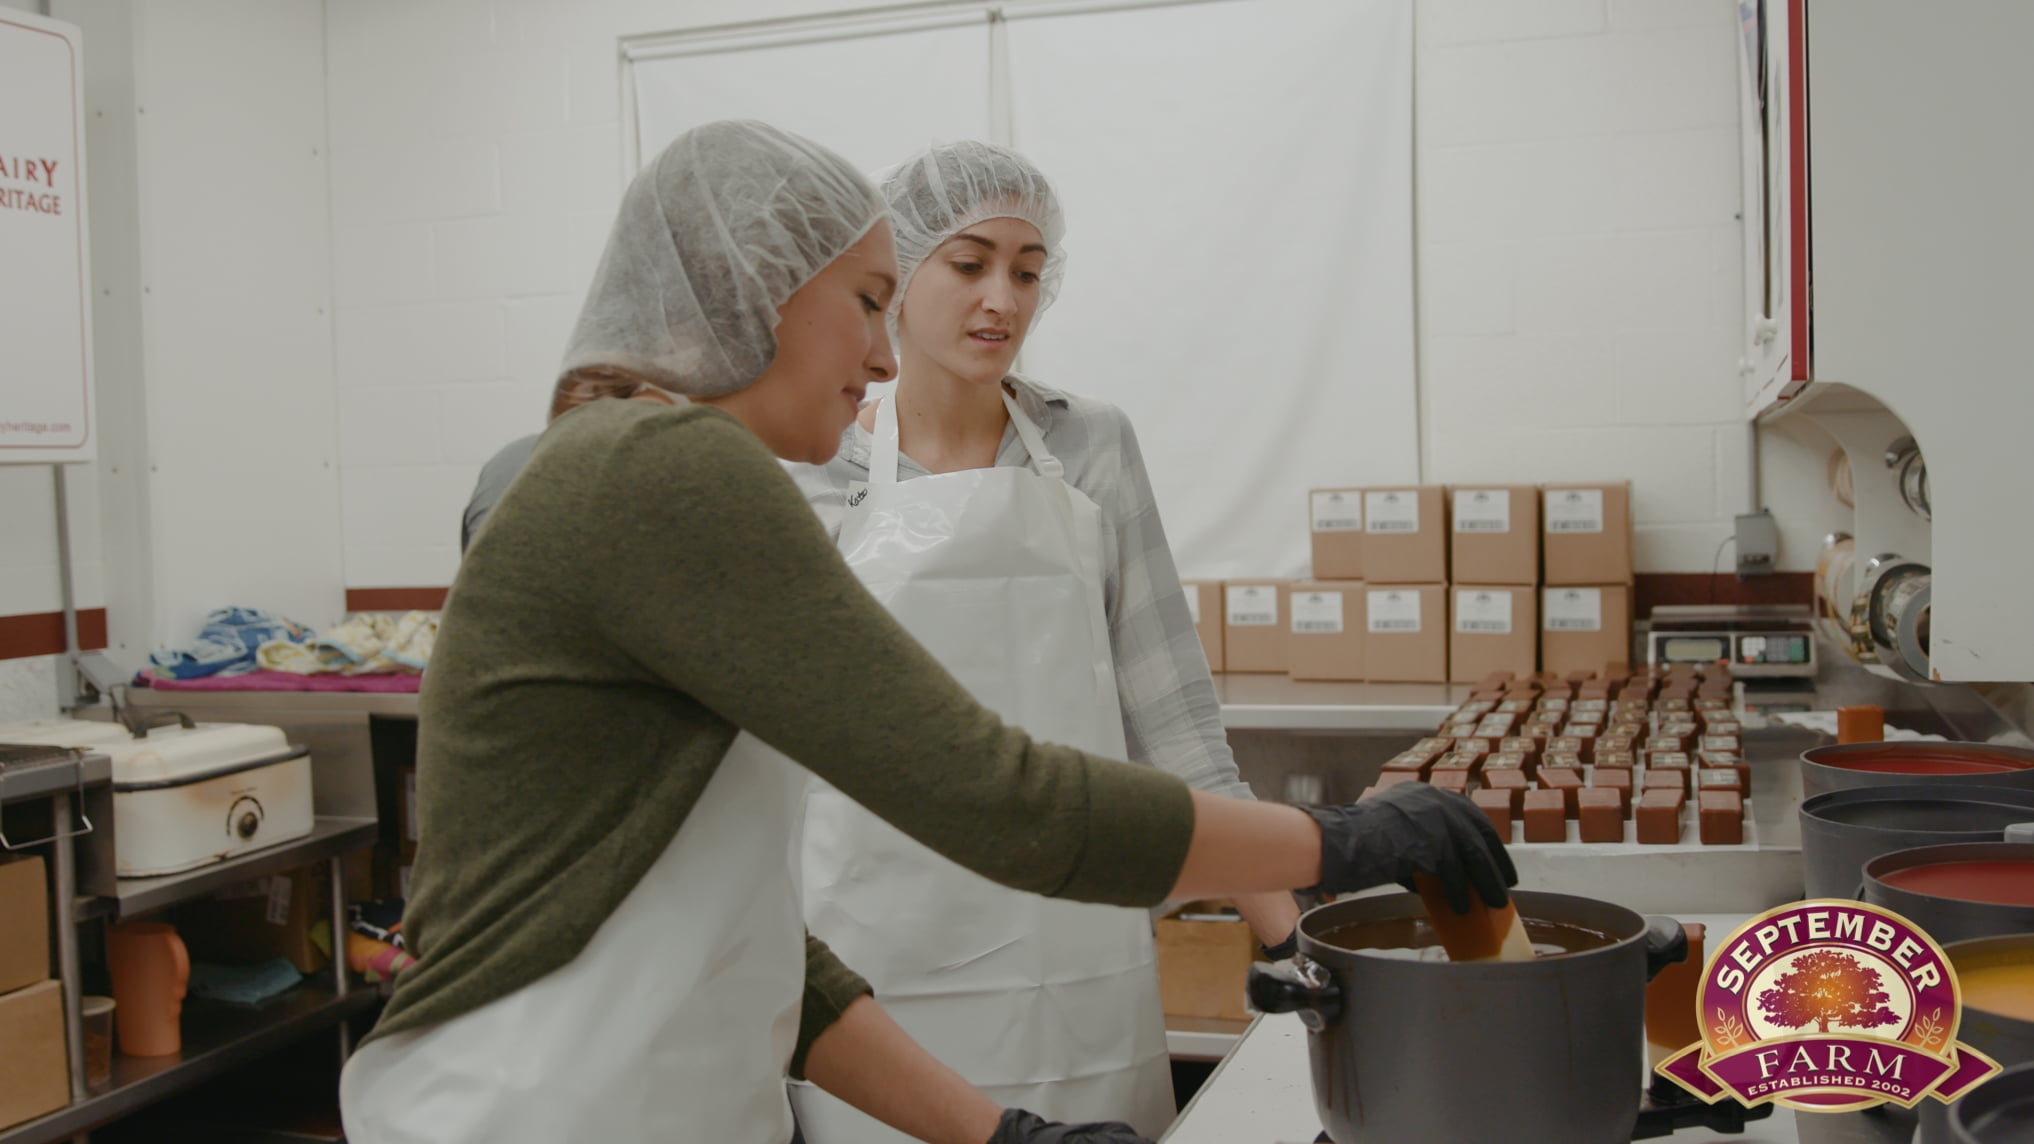 covering cheese with wax at september farm